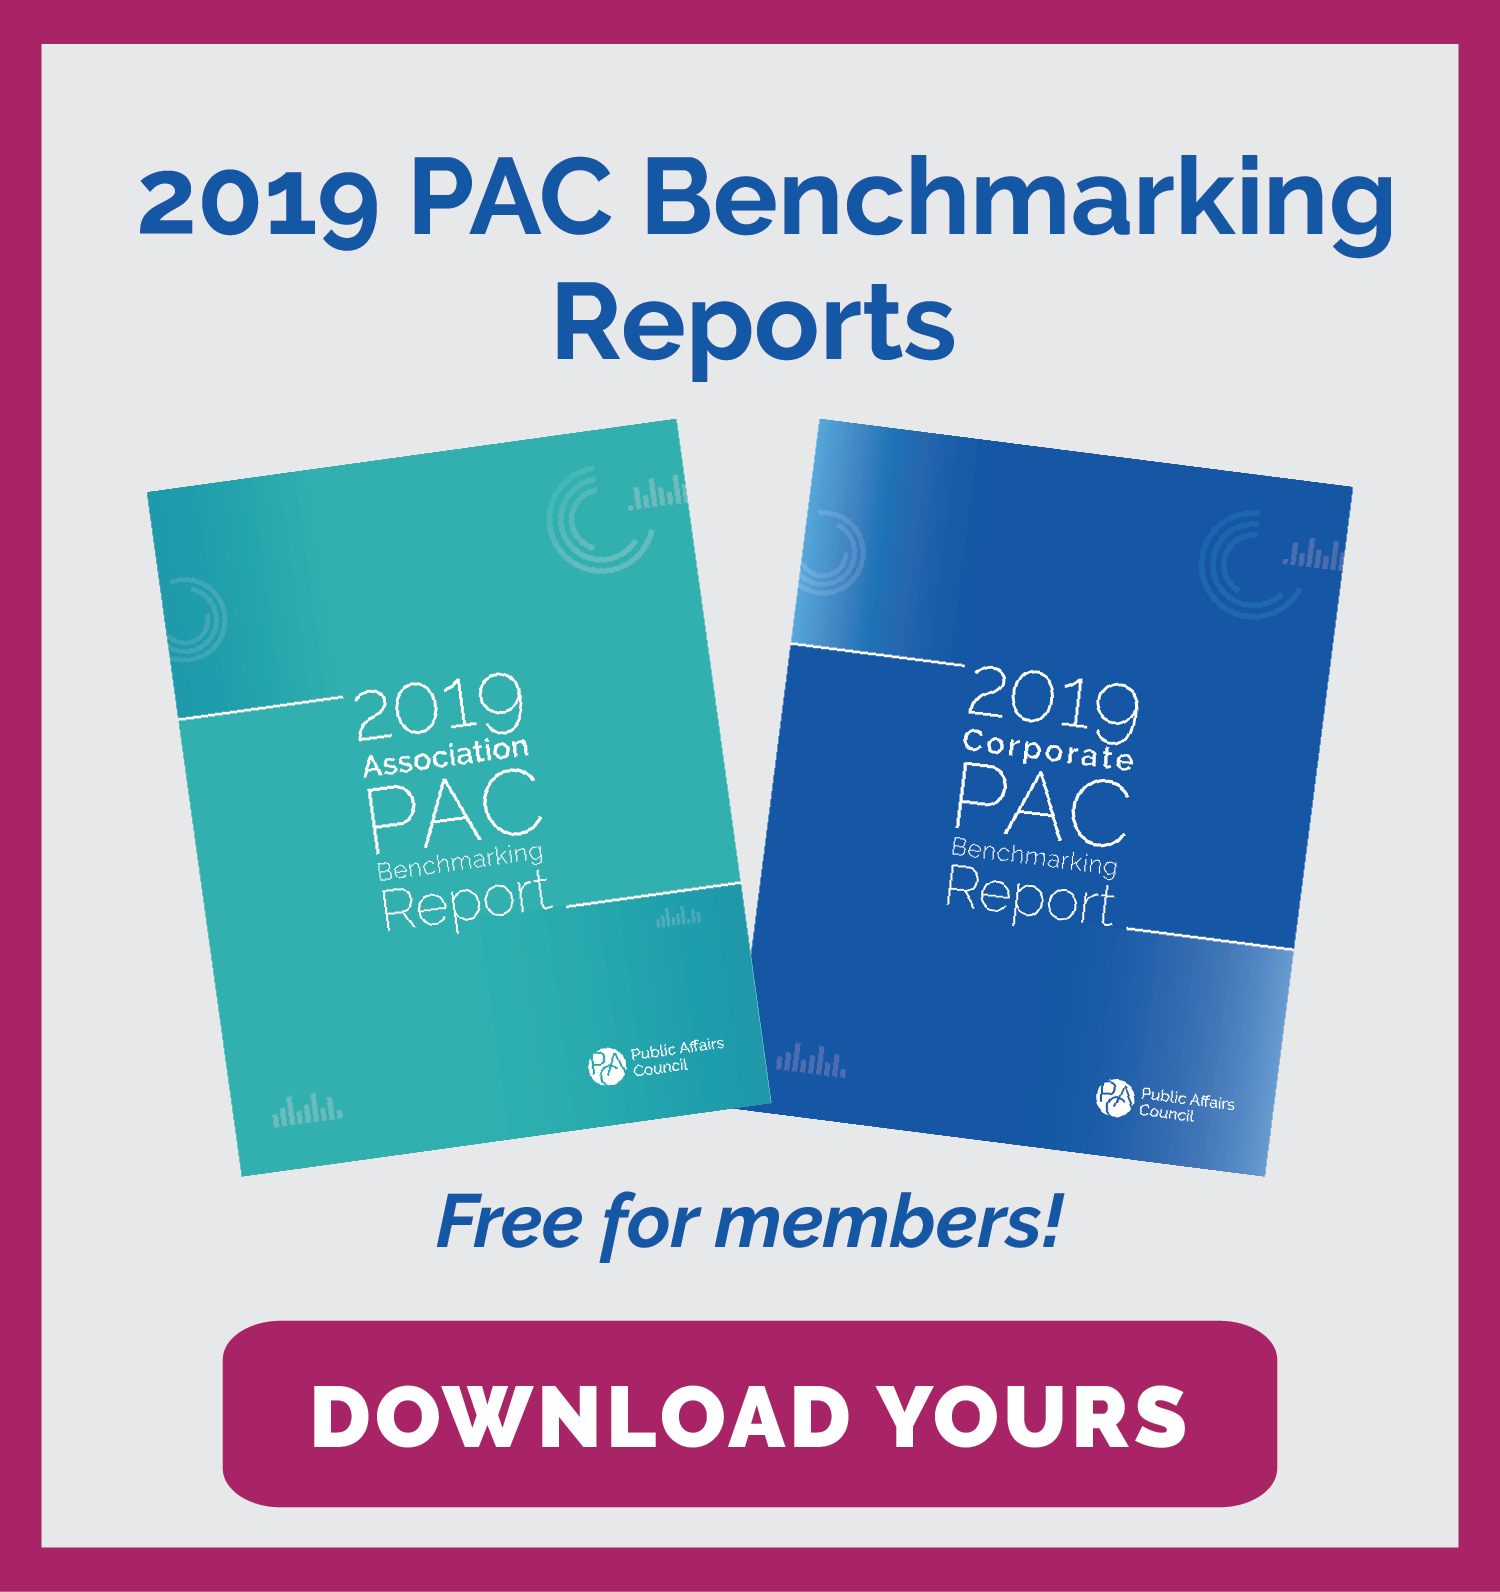 PAC Benchmarking Reports